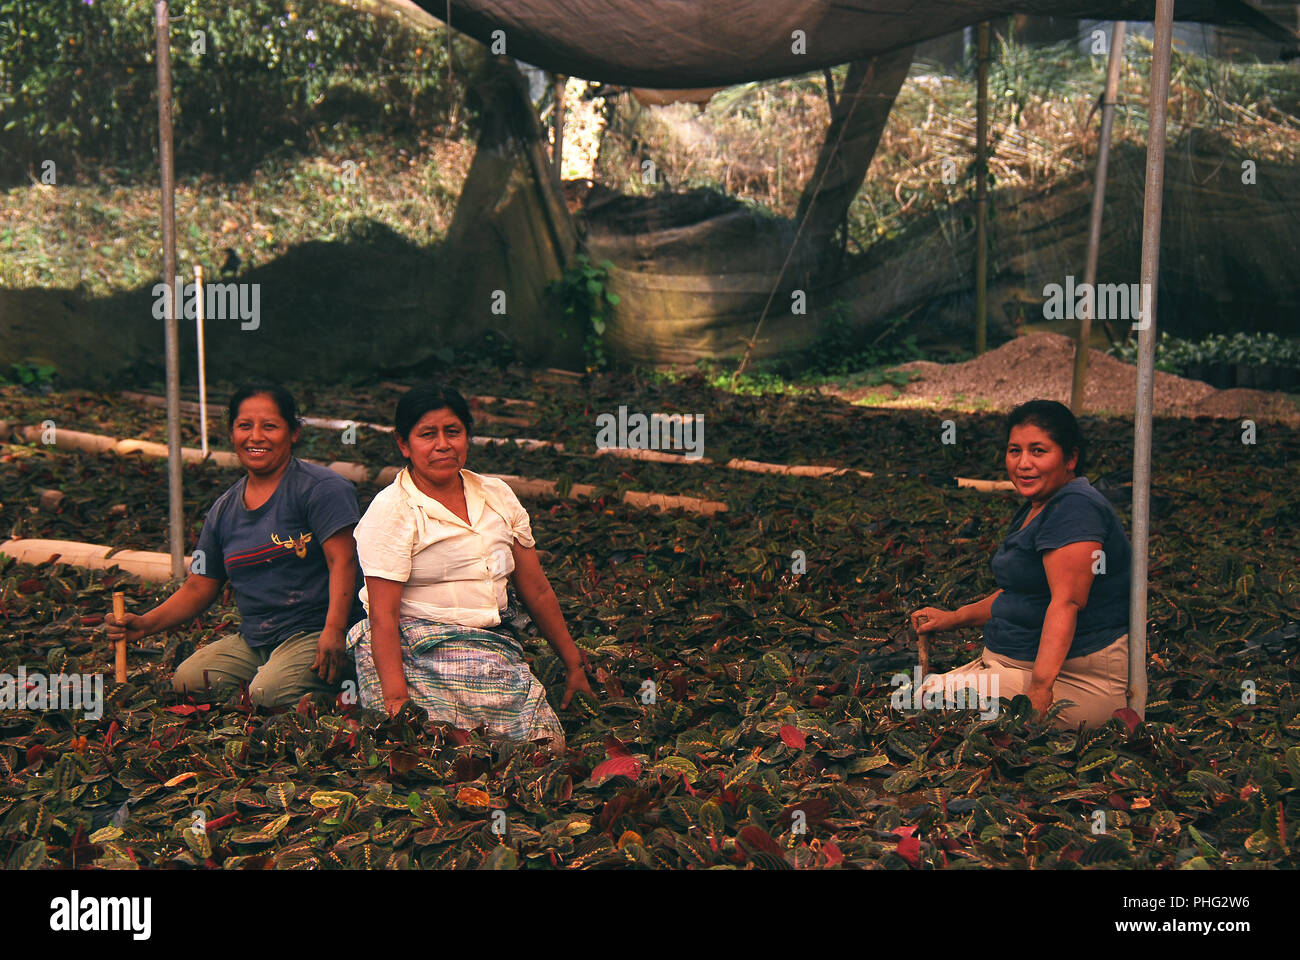 Indian women working on a plantation tending plants for export to Belgium and France. - Stock Image